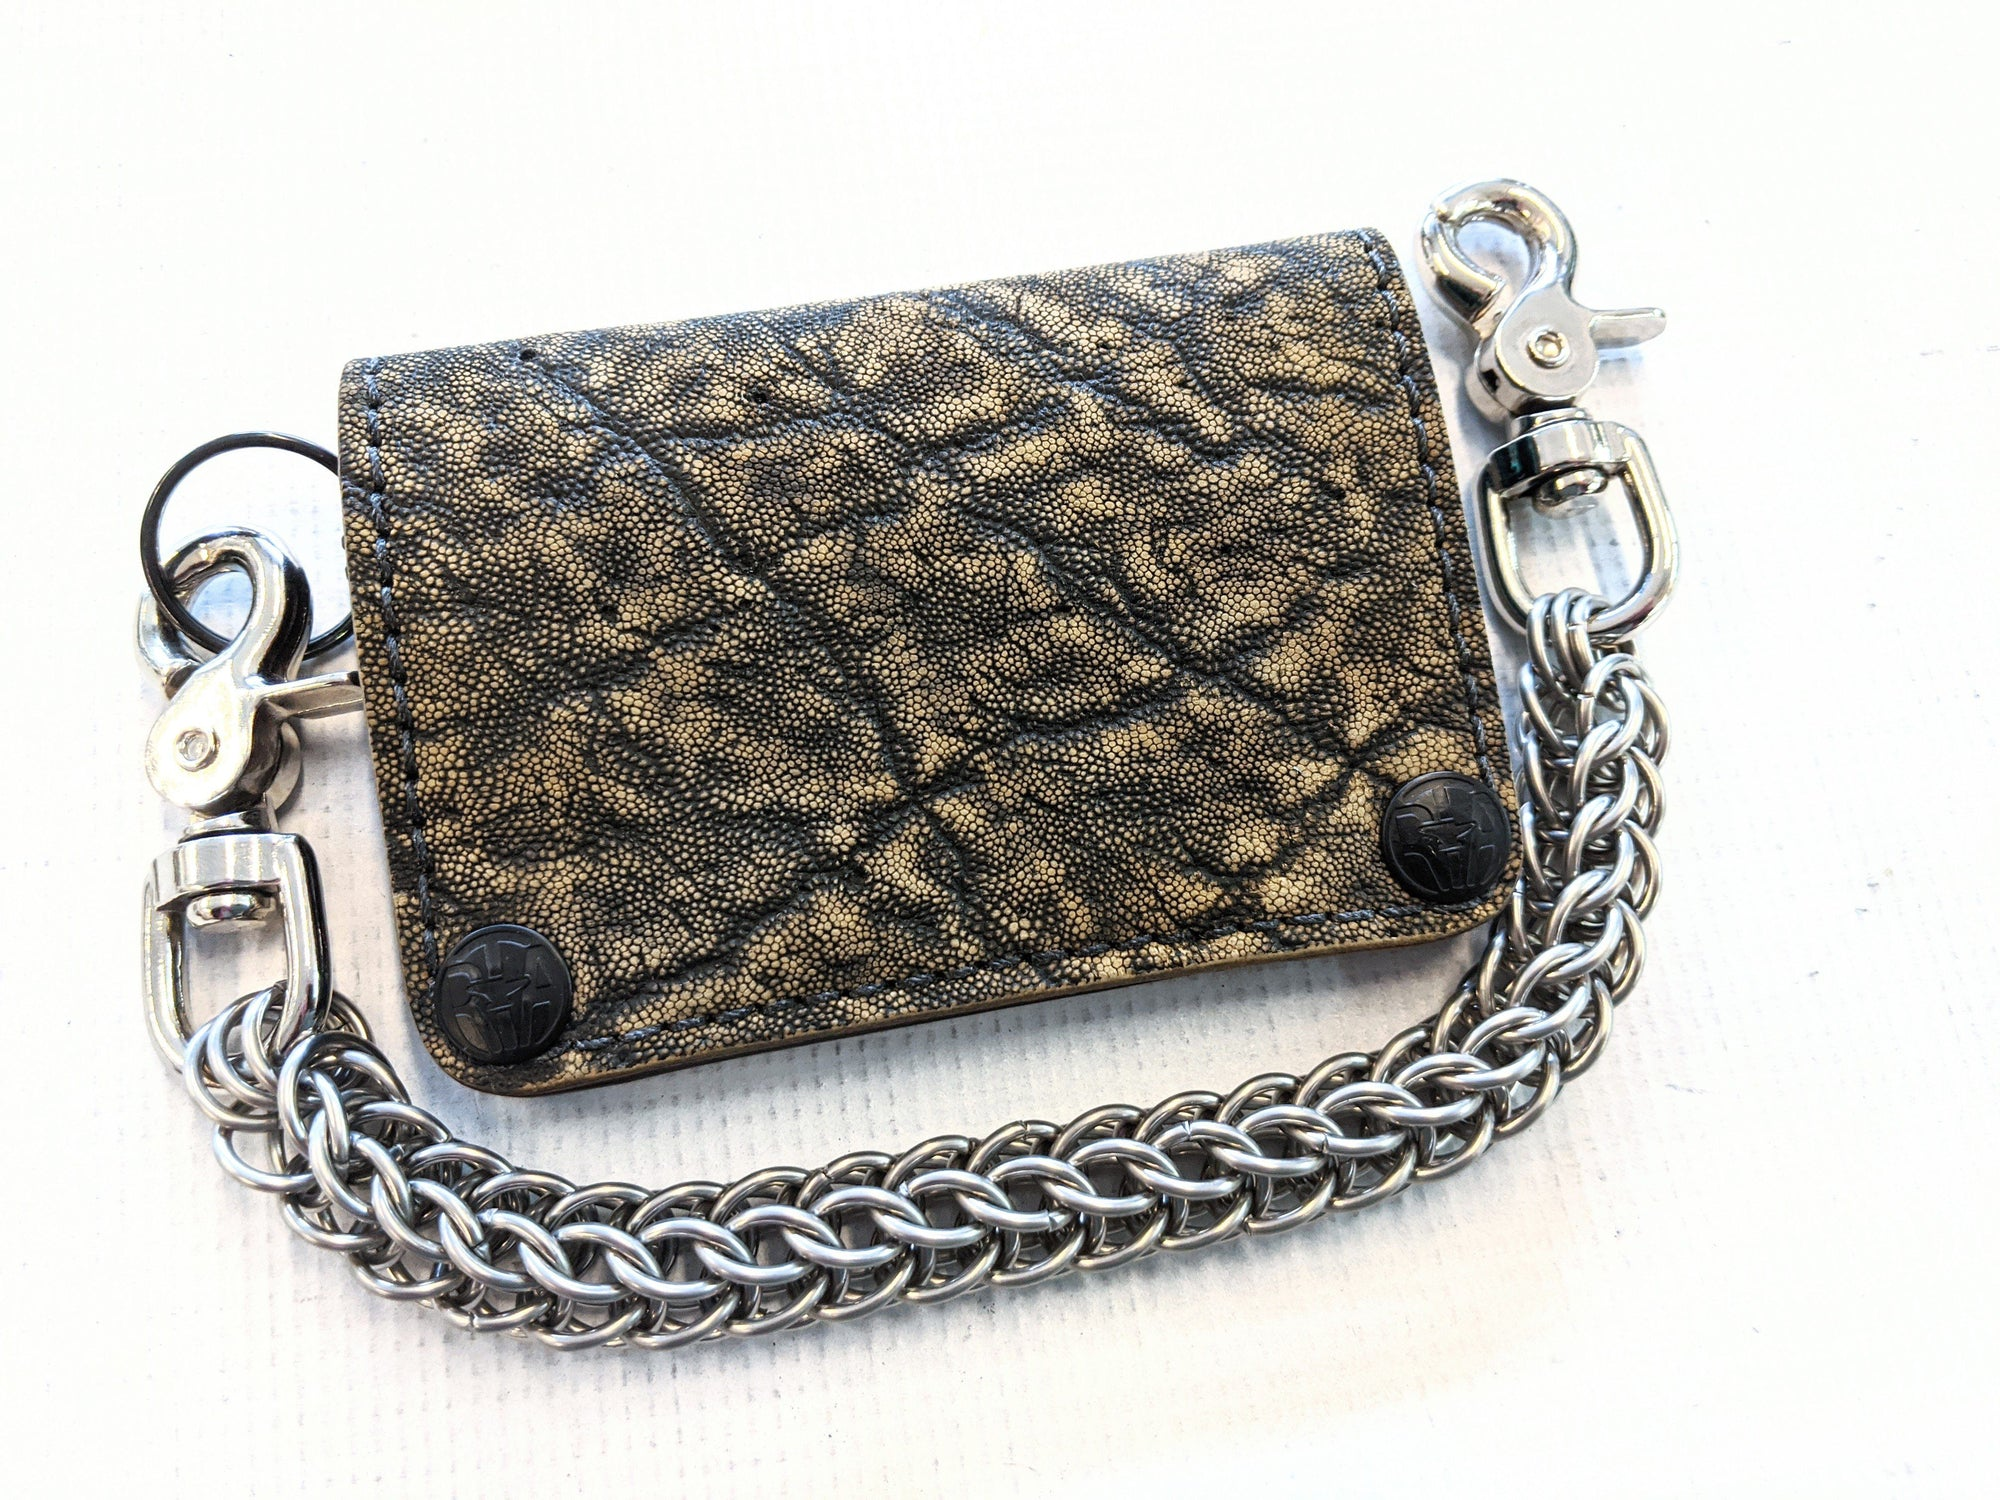 Mini Long Leather Chain Wallet - Gold Rush Elephant 2 - Anvil Customs